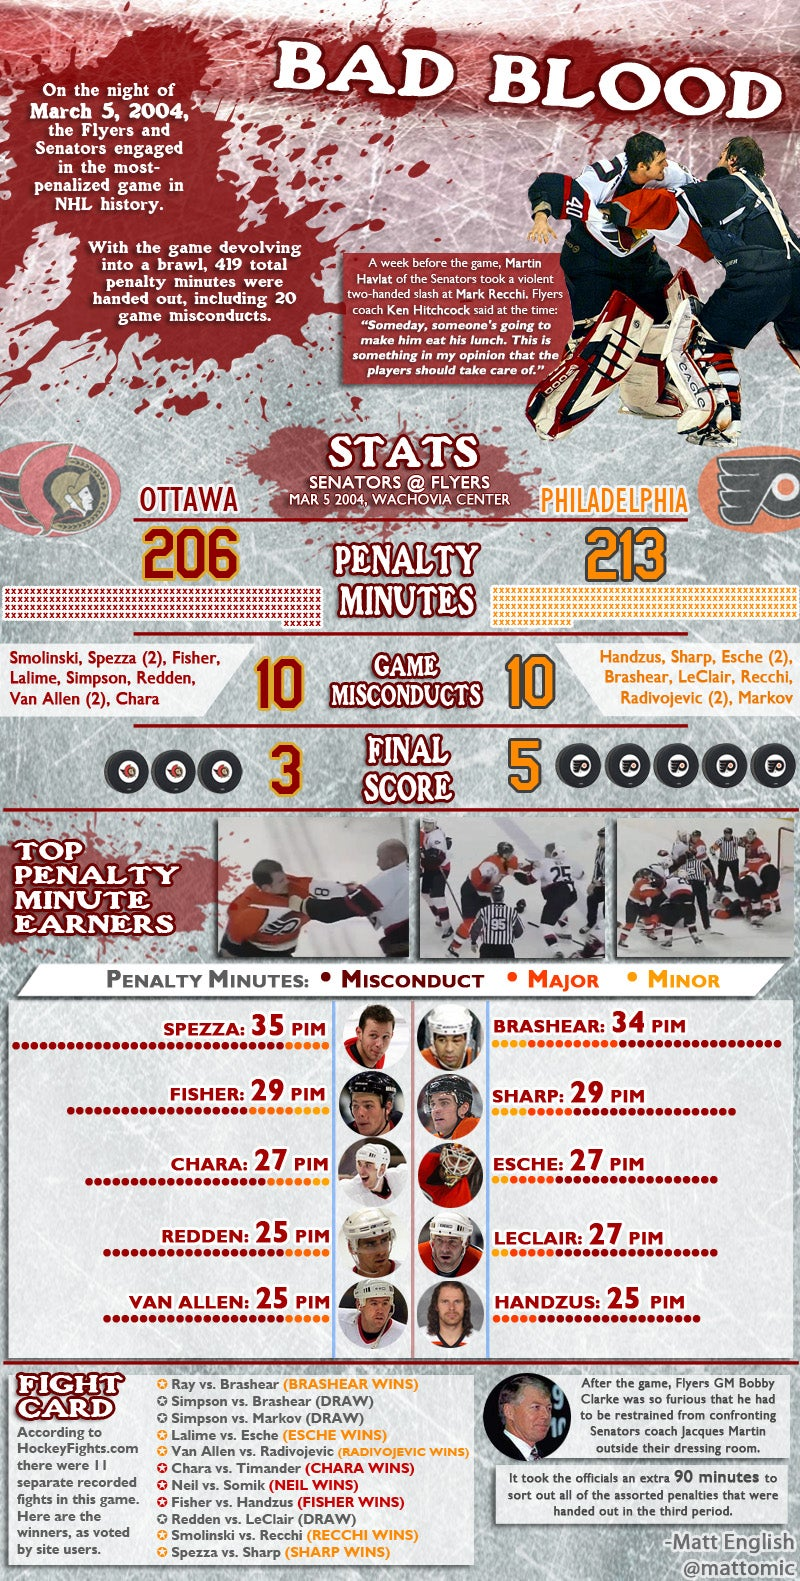 INFOGRAPHIC: The most-penalized NHL game ever was 10 years ago